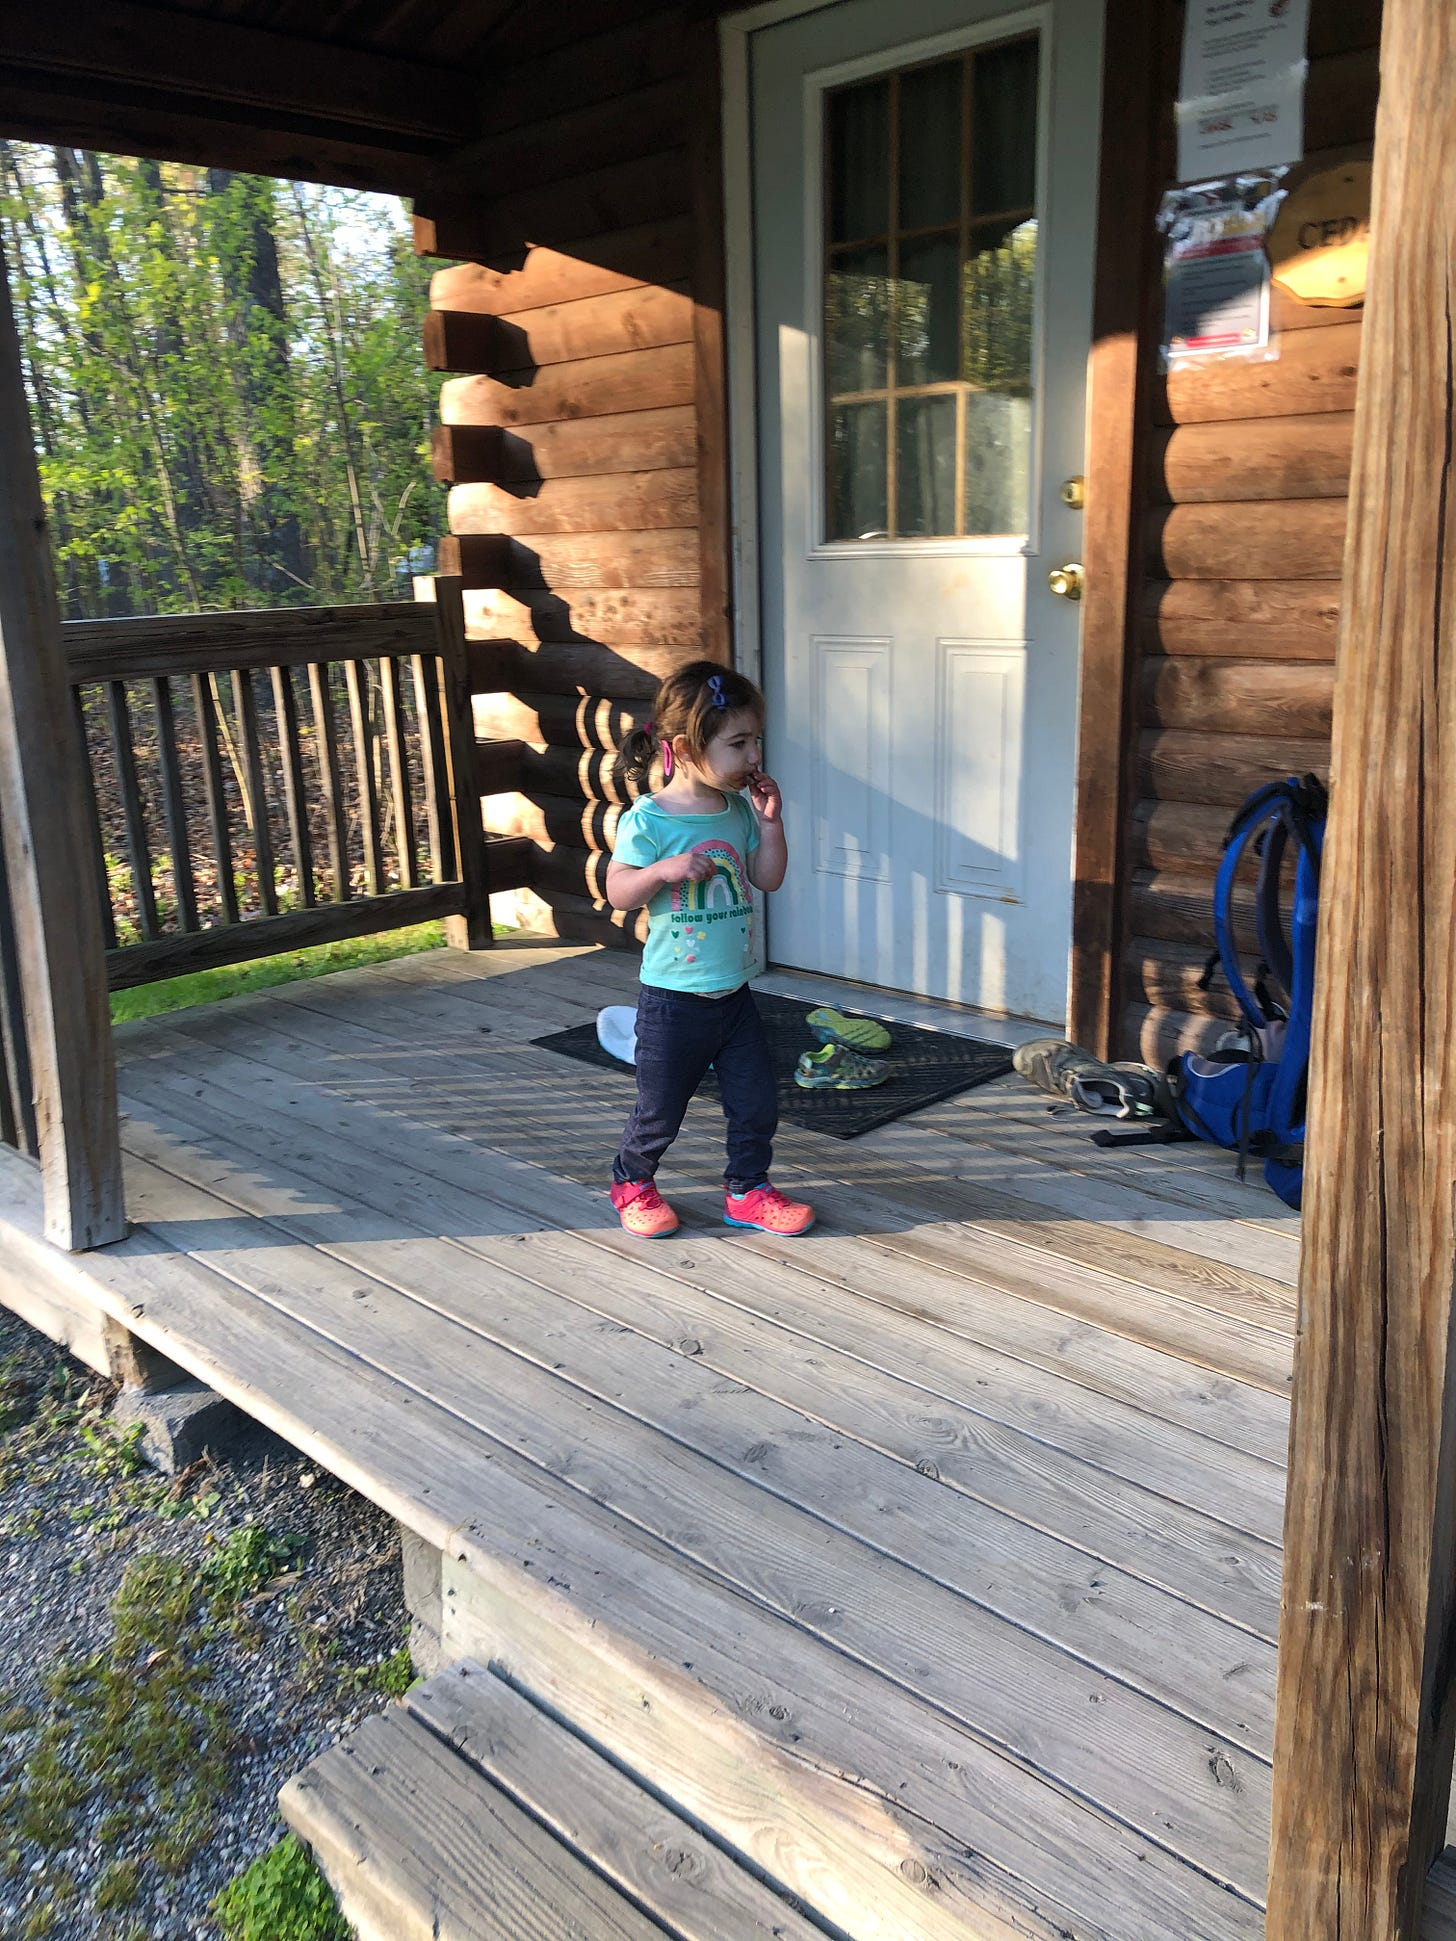 Photograph of a toddler wandering on a wooden porch in front of a log cabin.